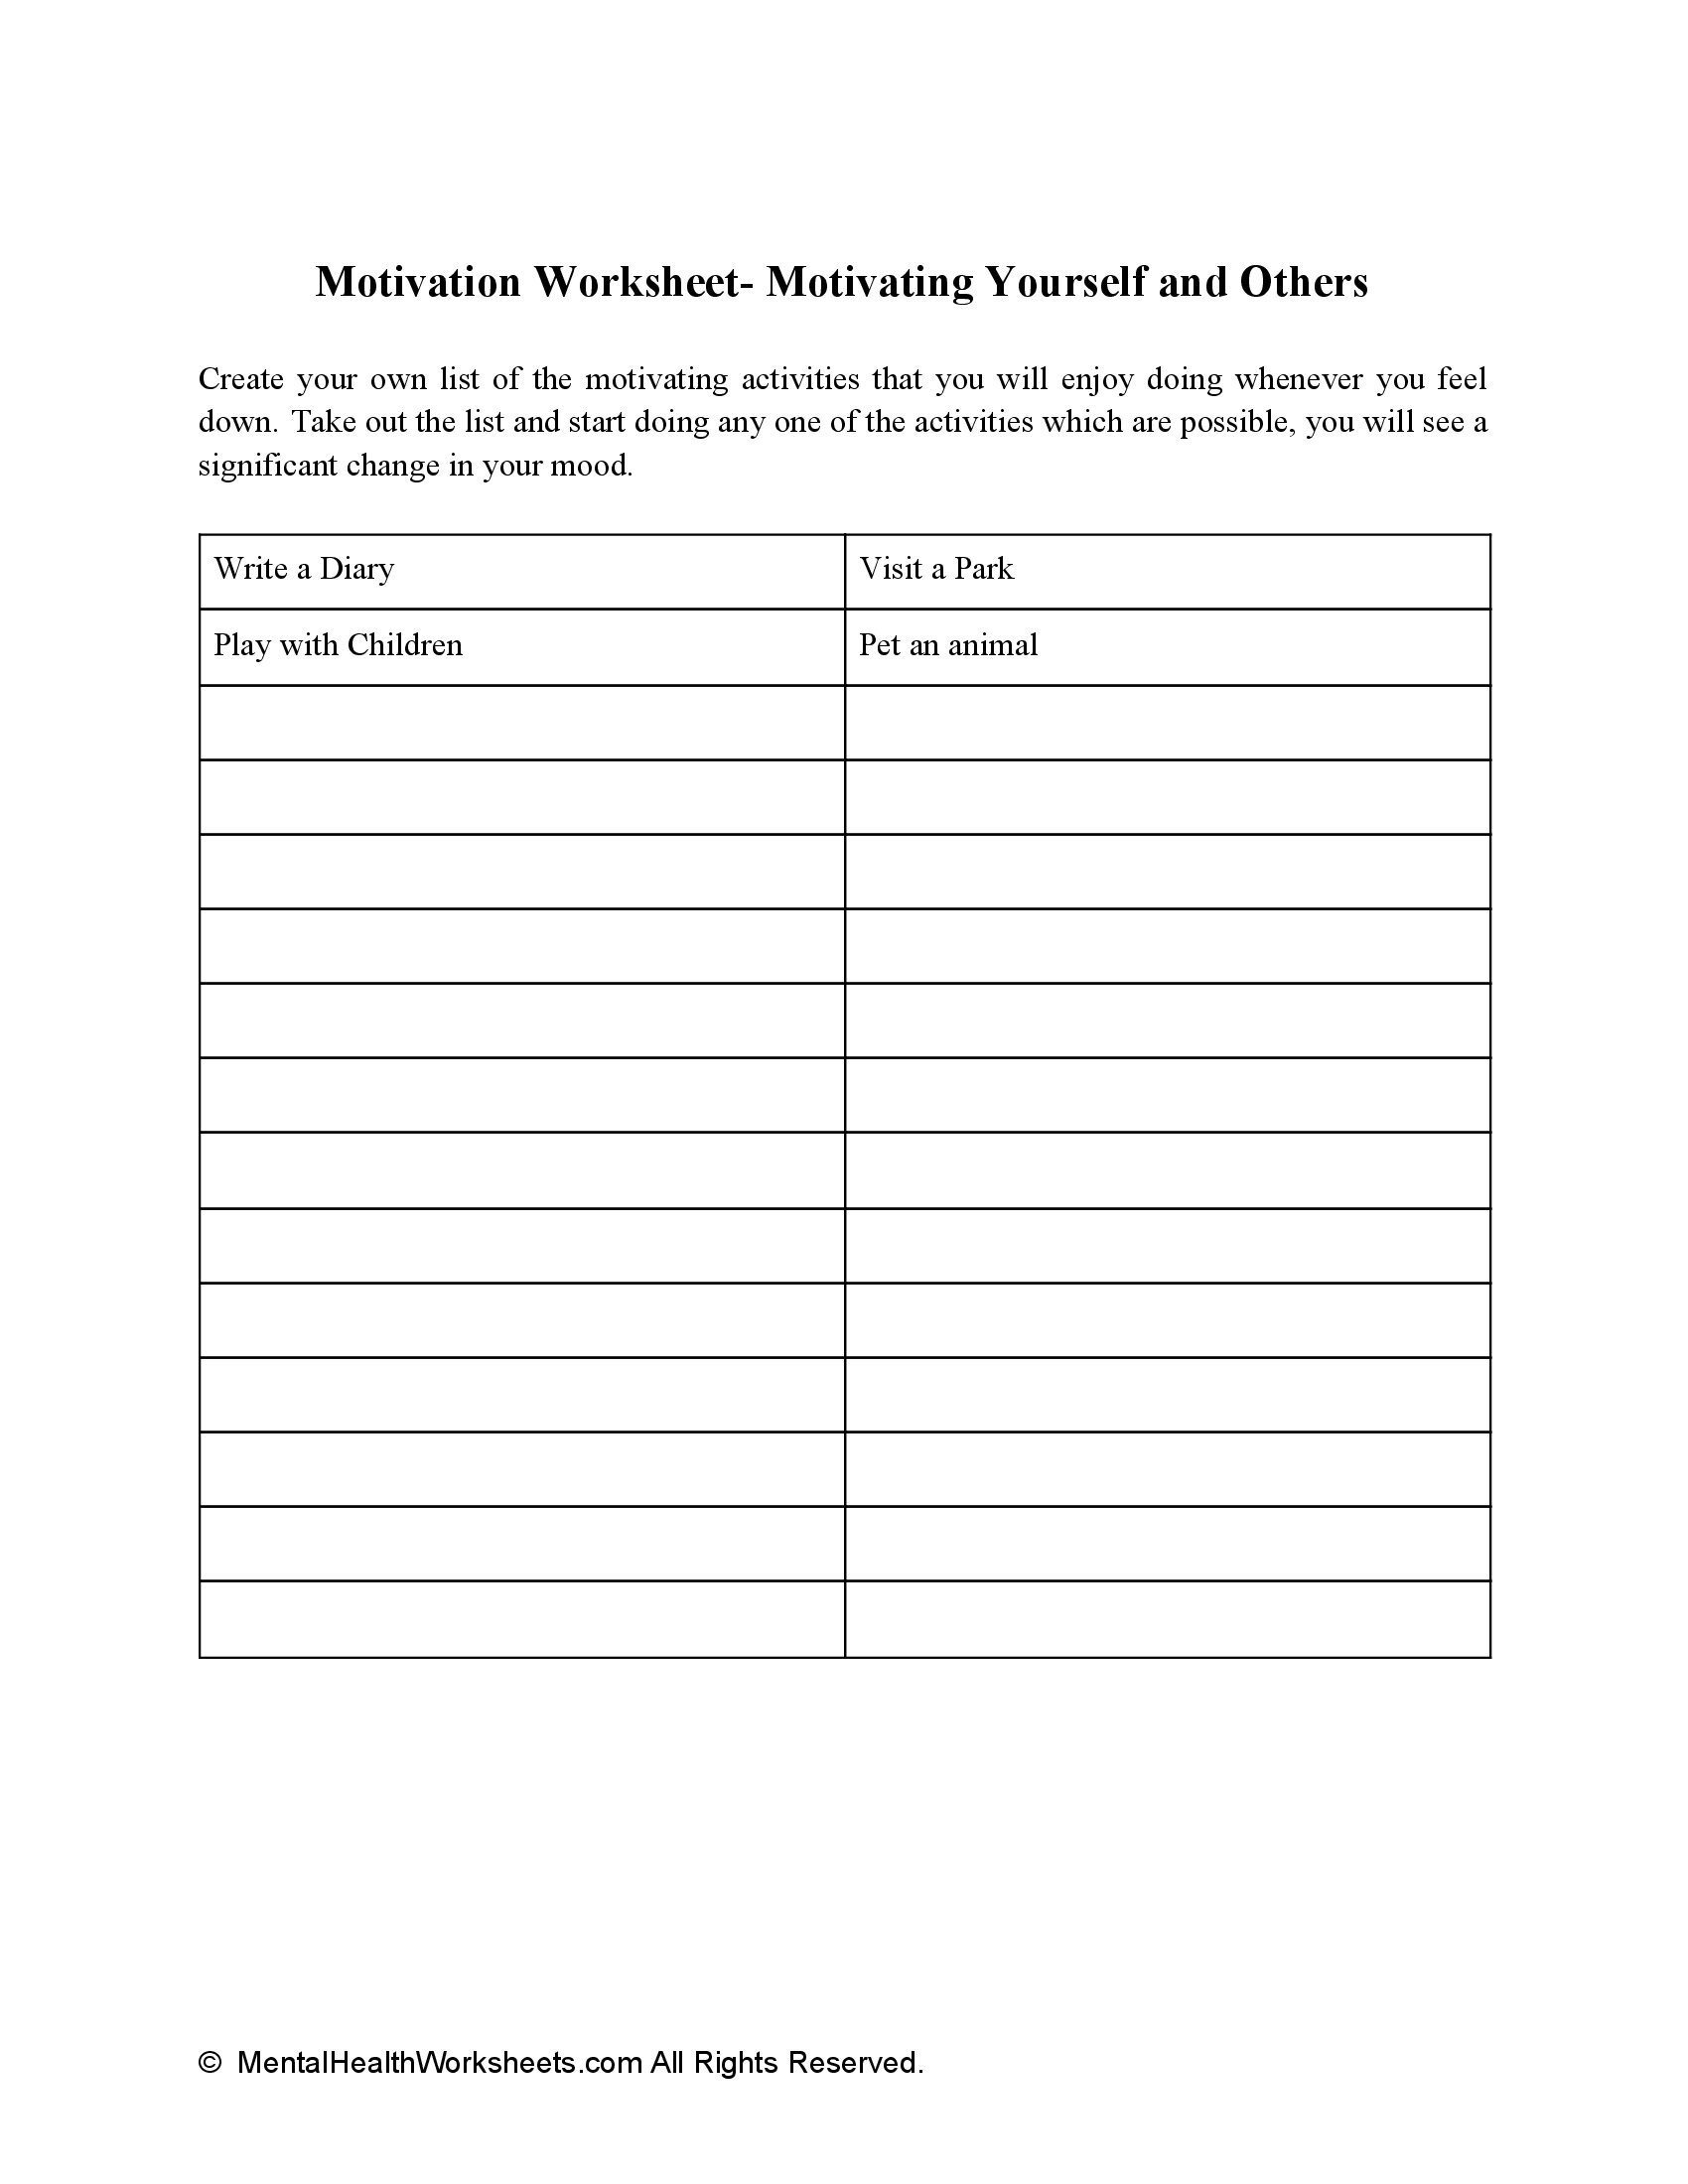 Motivation Worksheet- Motivating Yourself and Others